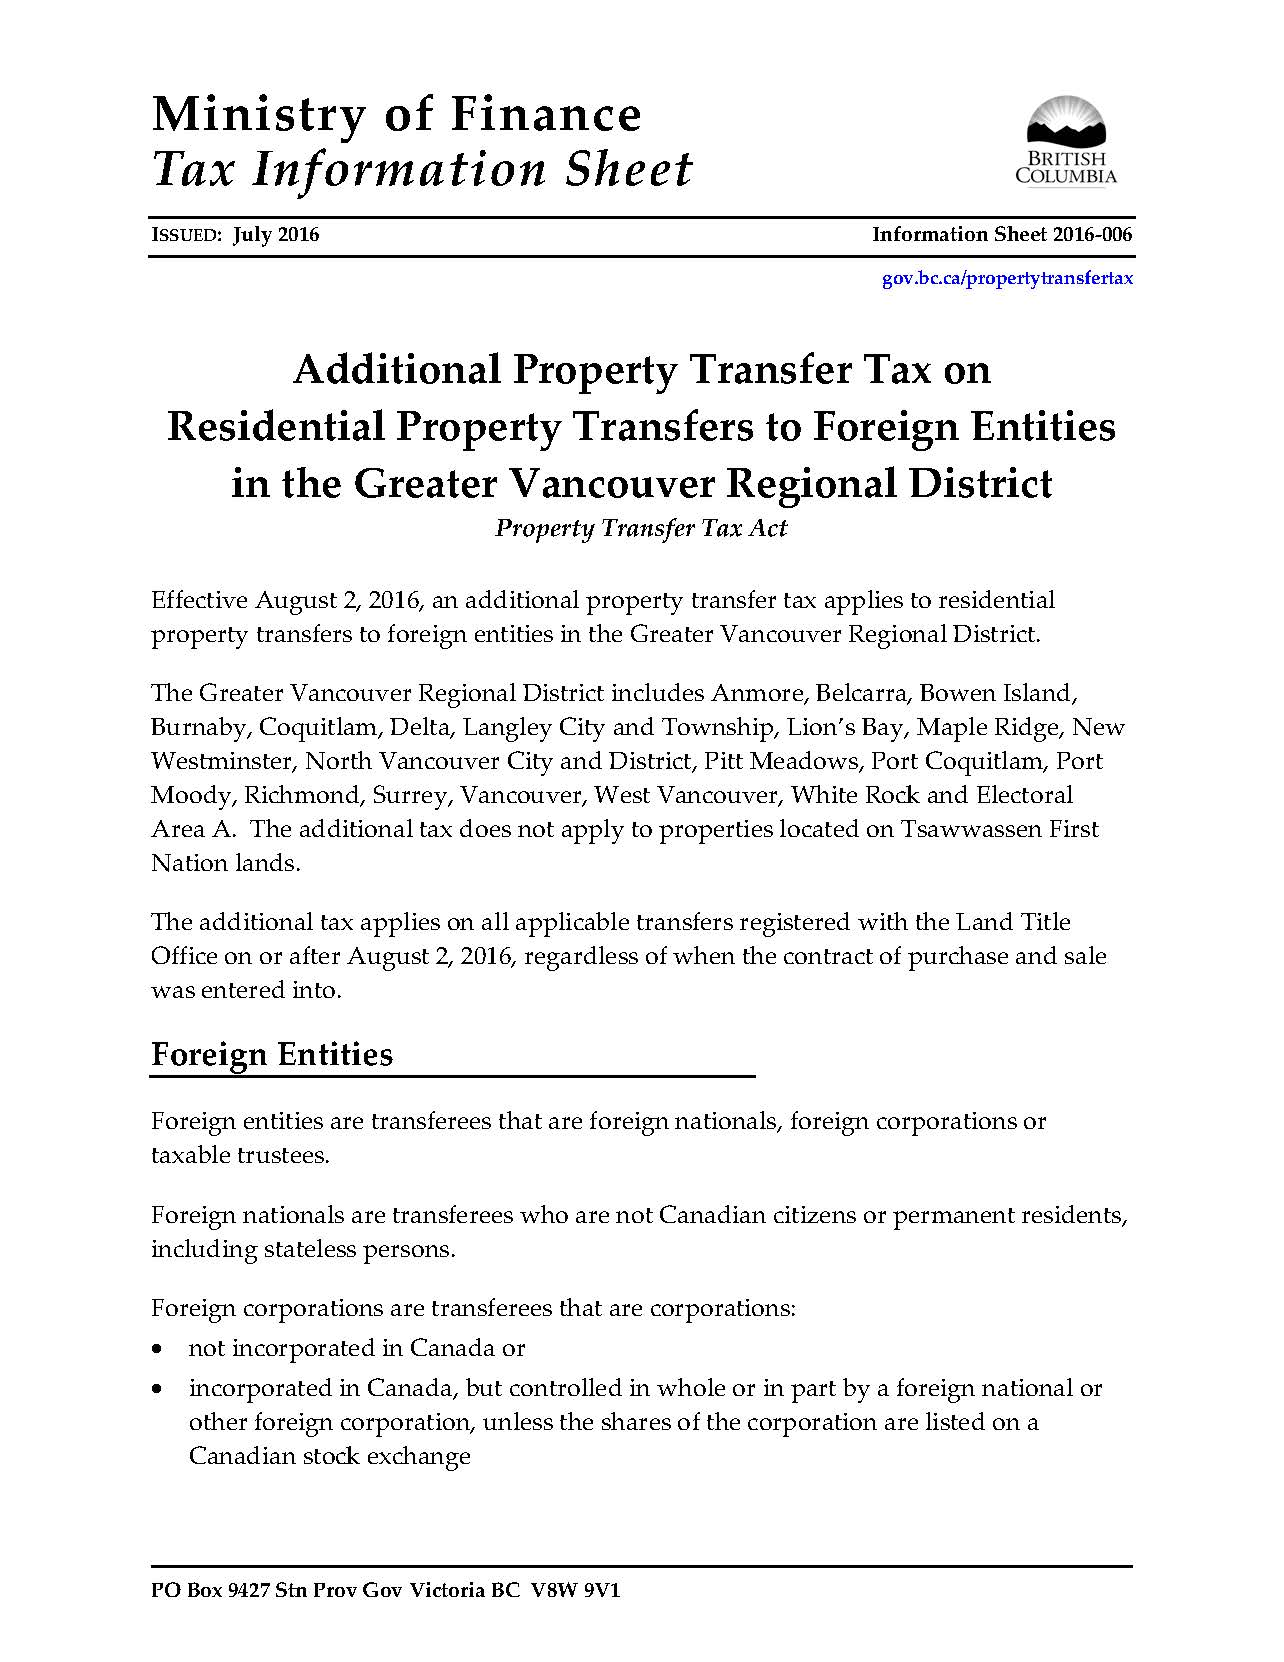 is-006-additional-property-transfer-tax-foreign-entities-vancouver_Page_1